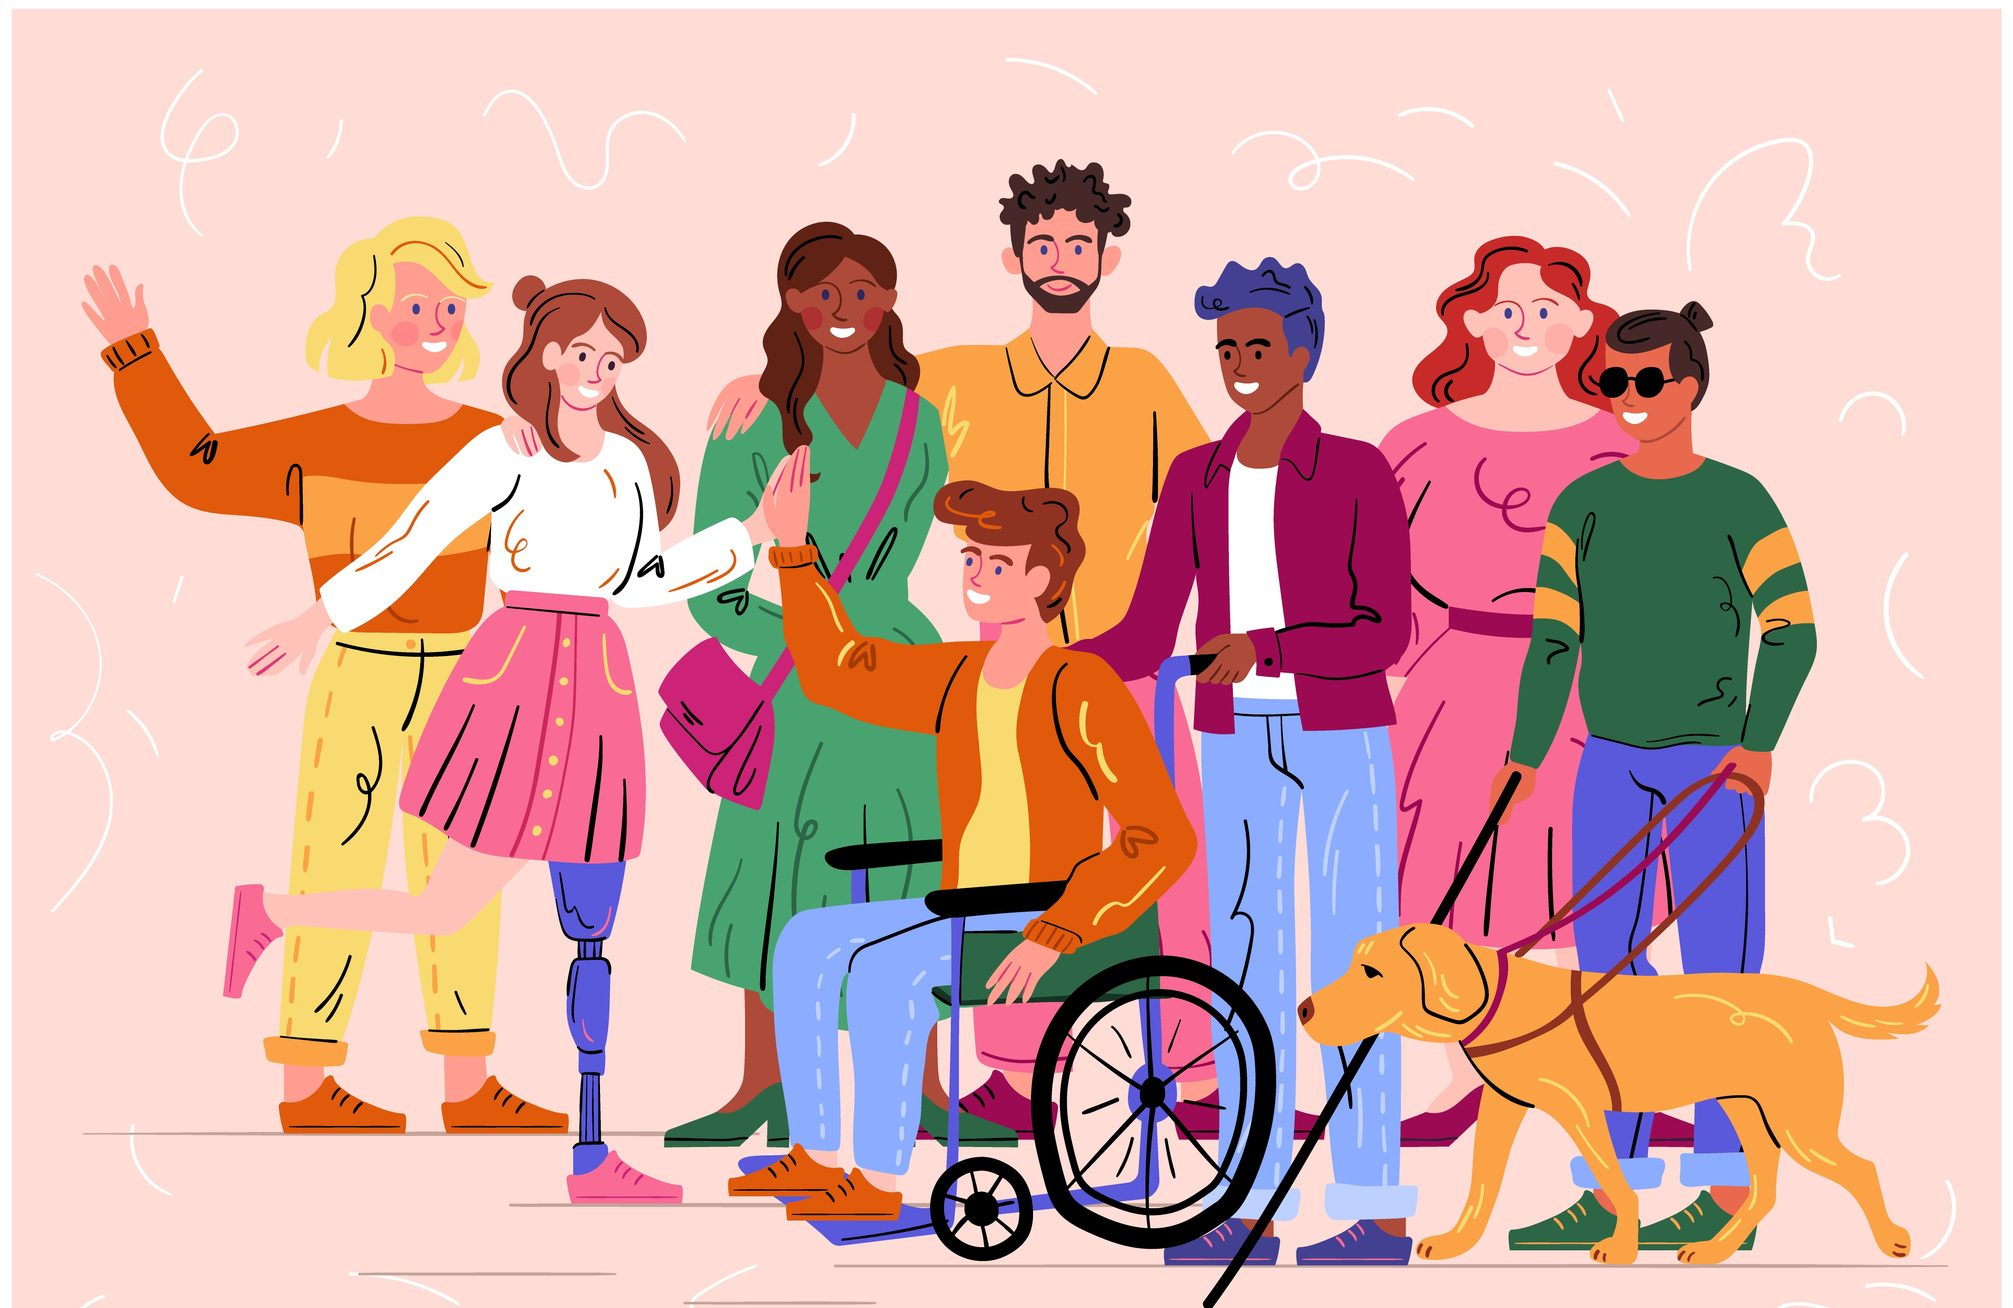 graphic of diverse group of people